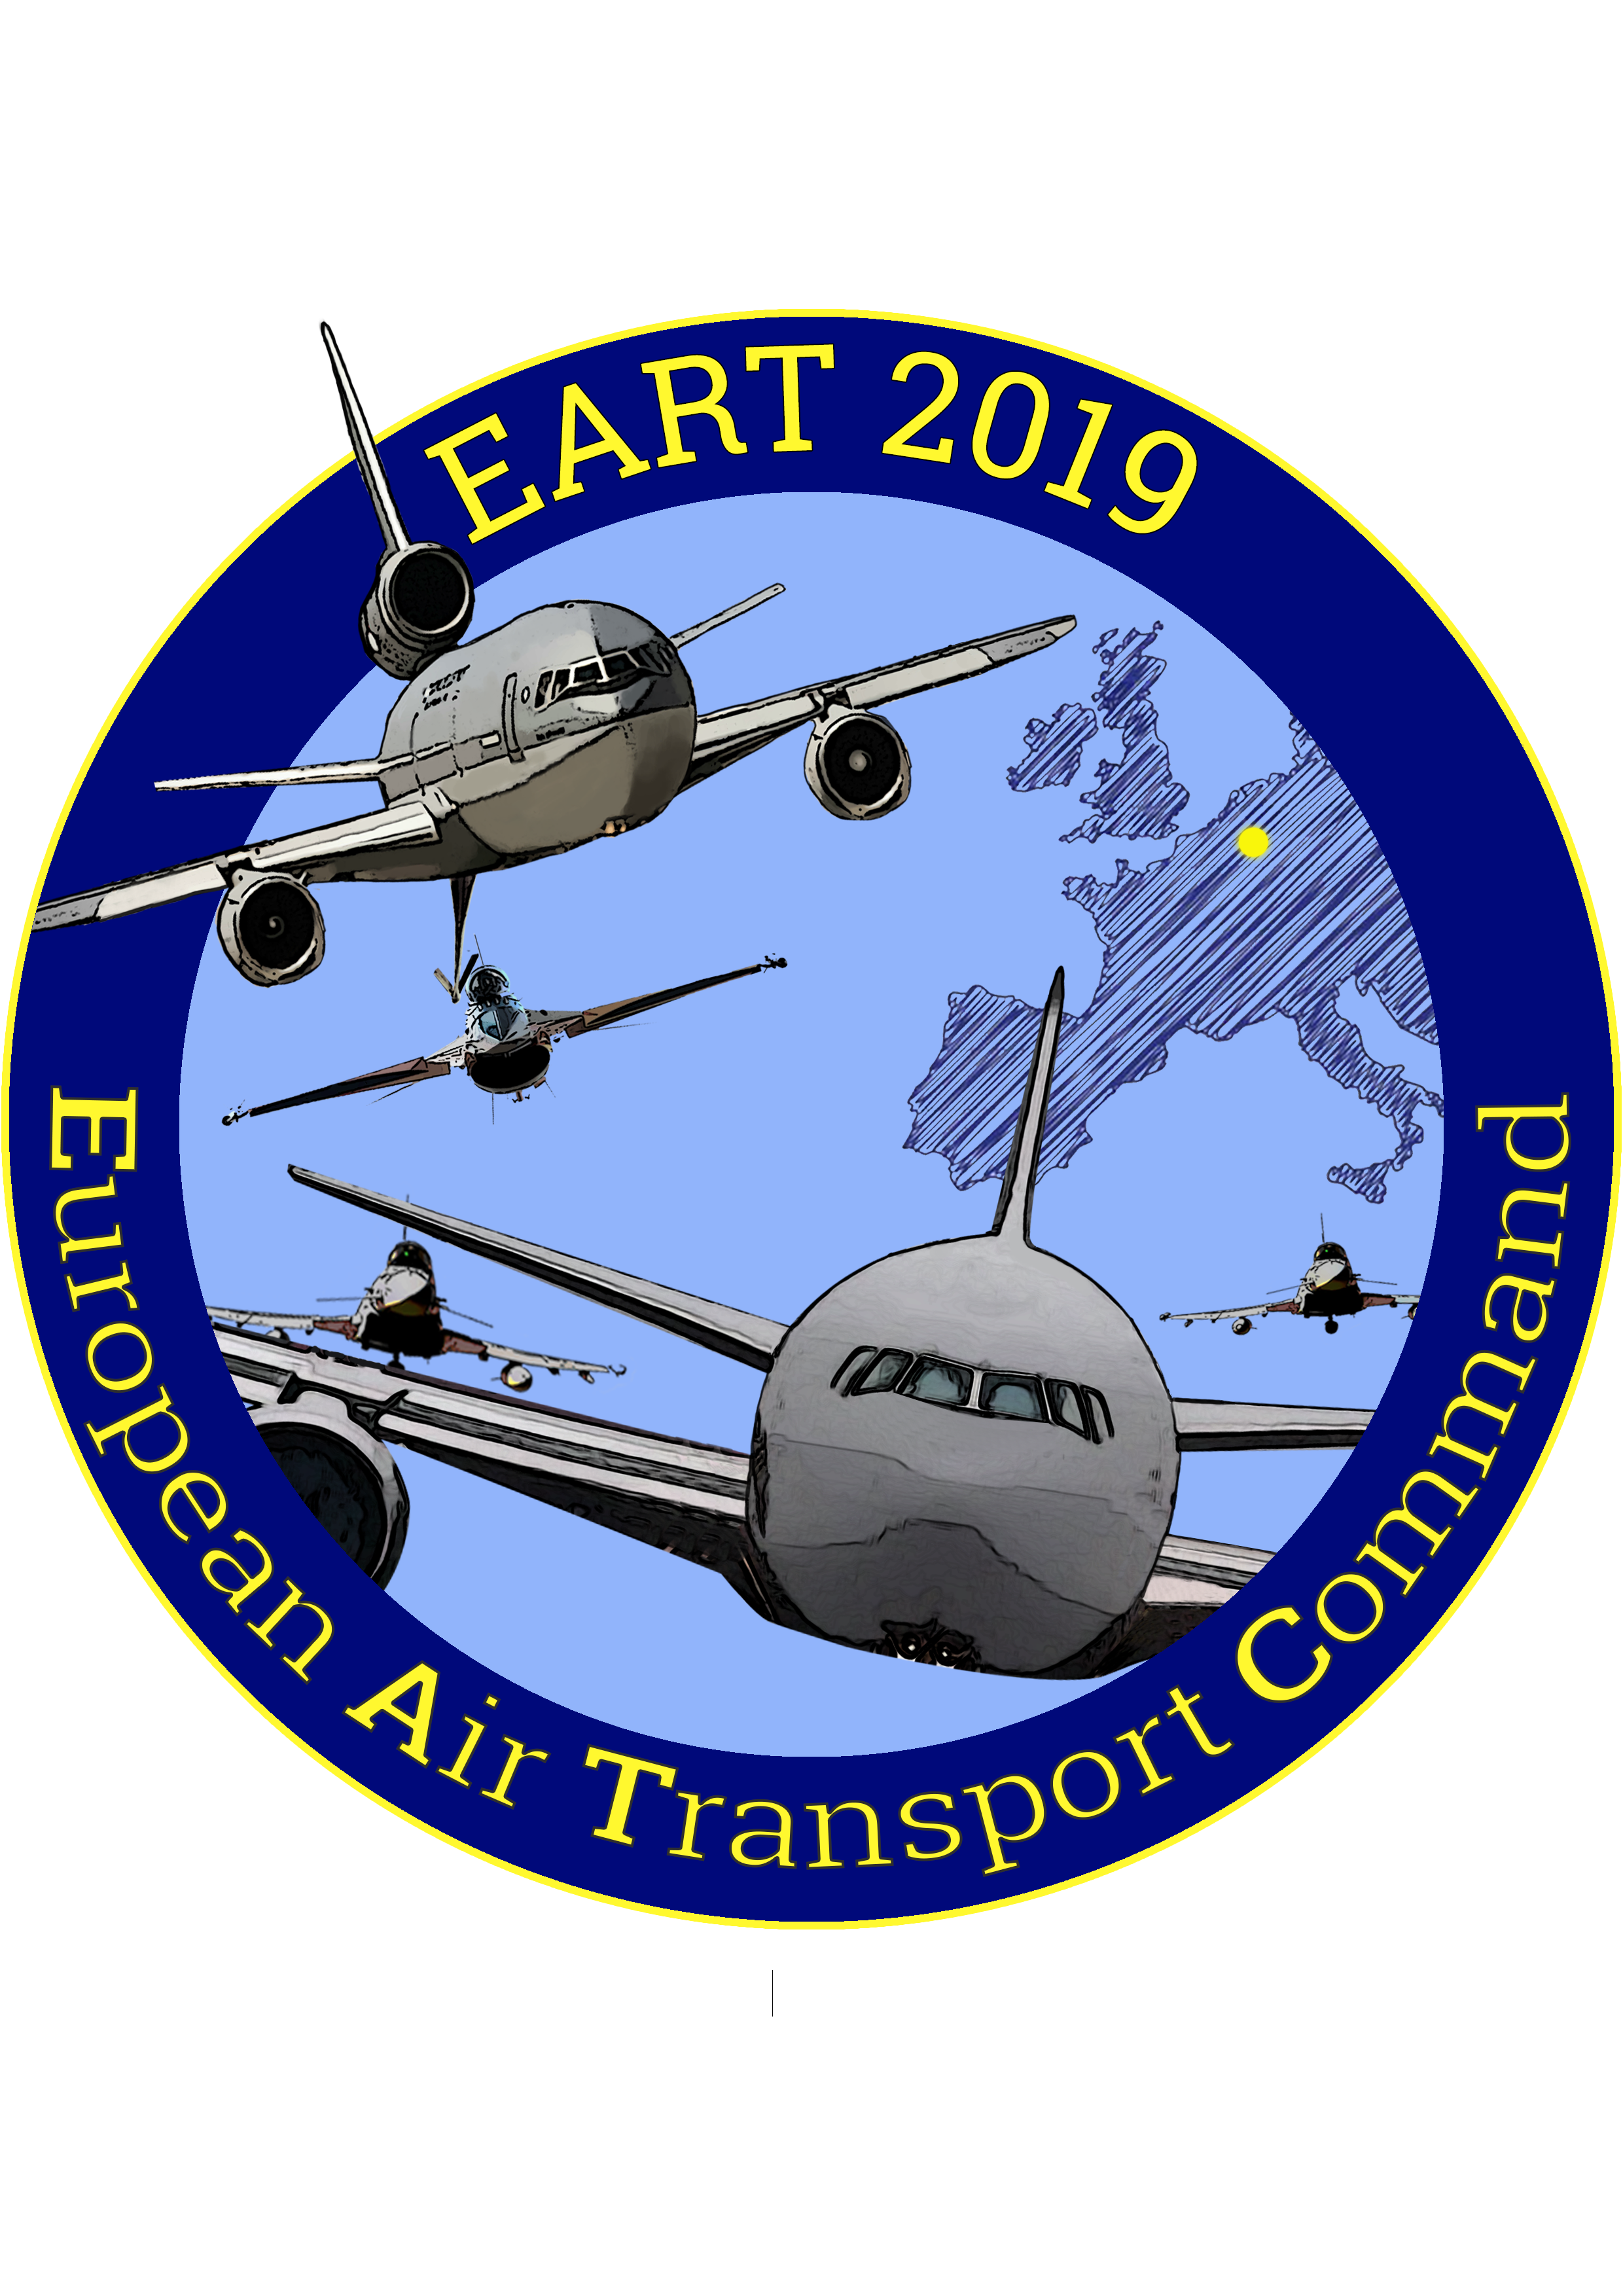 Watch our awesome EART 2019 video